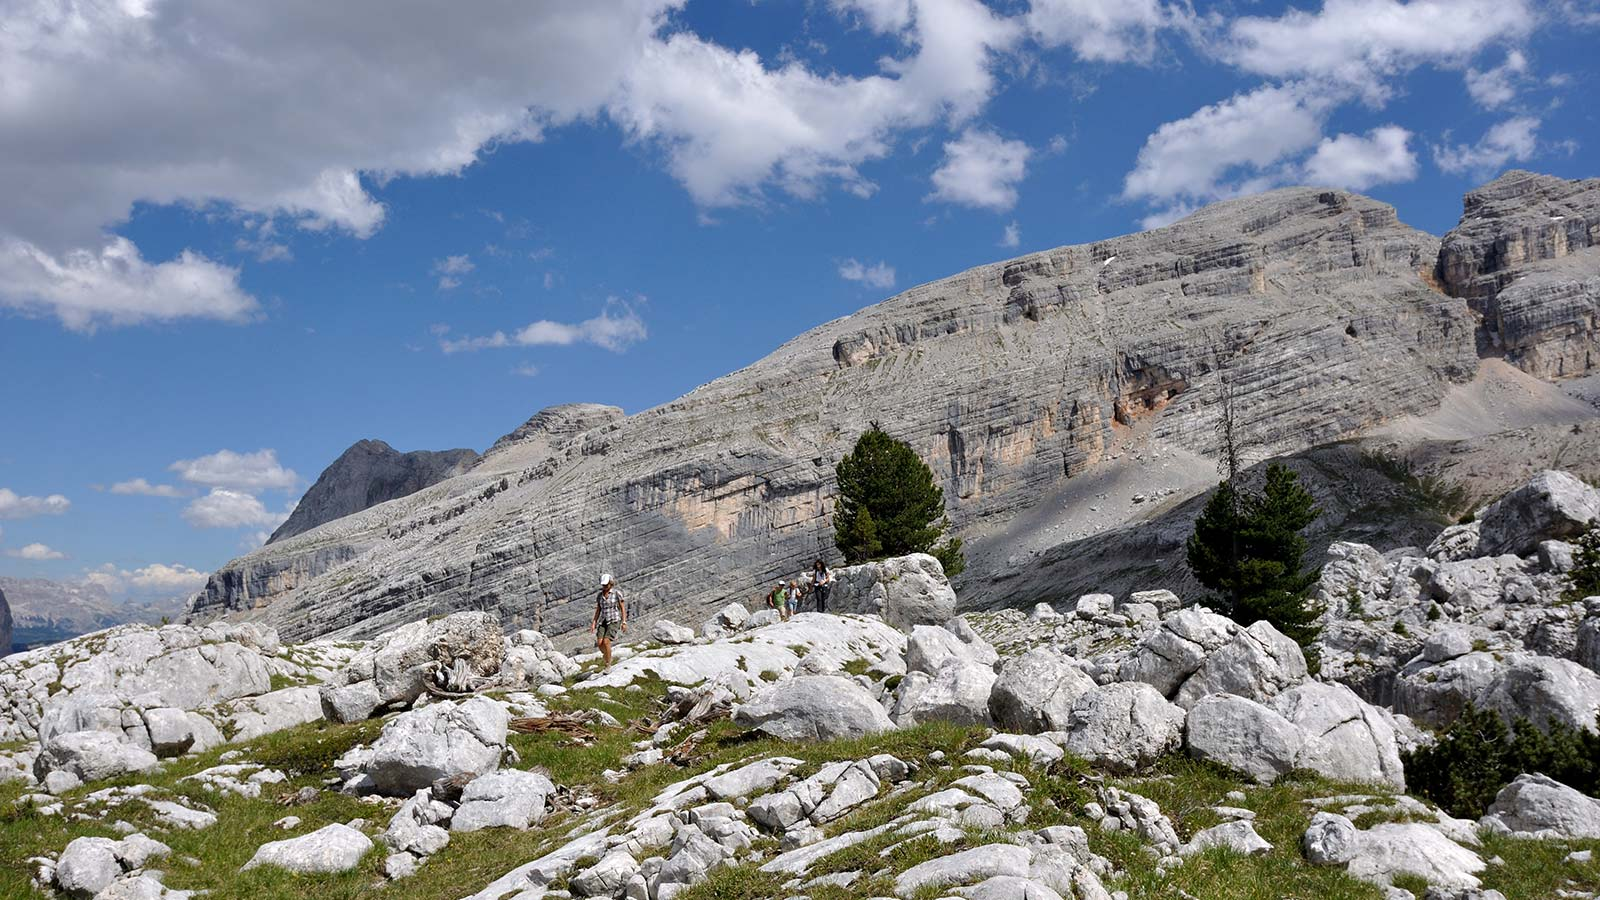 Group of hikers in high mountain walks between the dolomitic rocks in South Tyrol